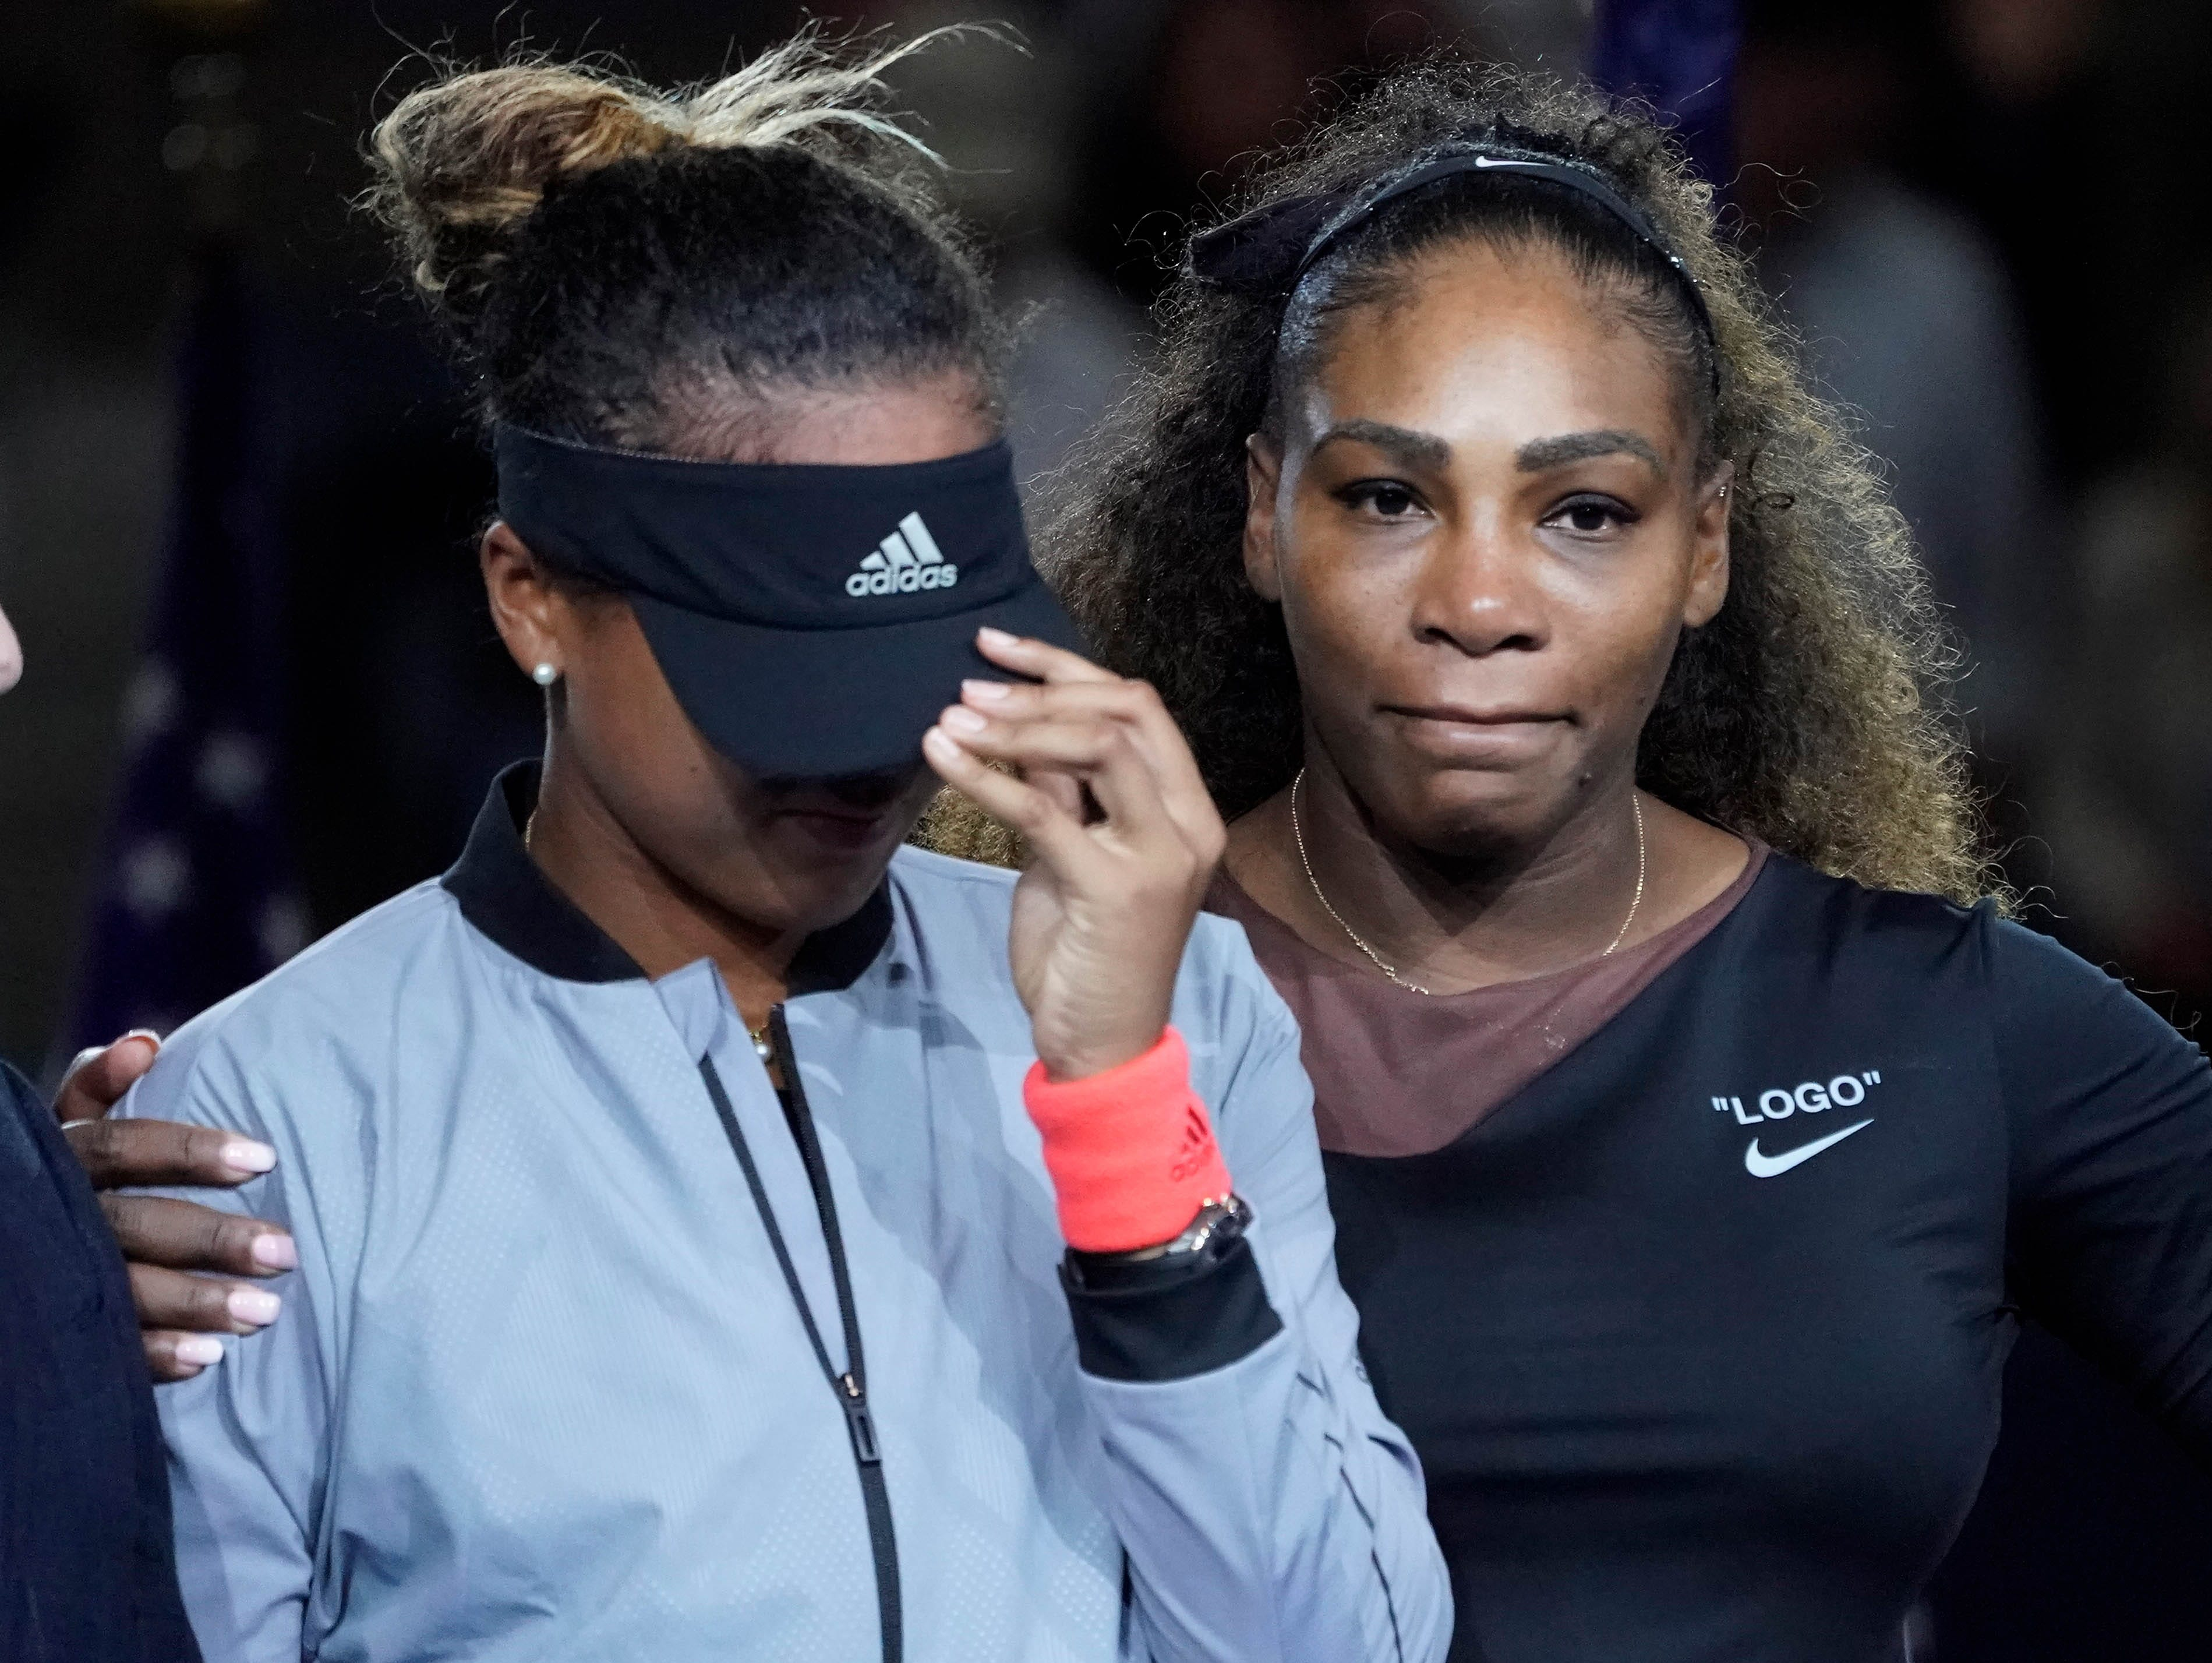 Sept. 8, 2018: Naomi Osaka cries as Serena Williams comforts her while the crowd boos after the women's final match during the 2018 U.S. Open tennis tournament in New York City.